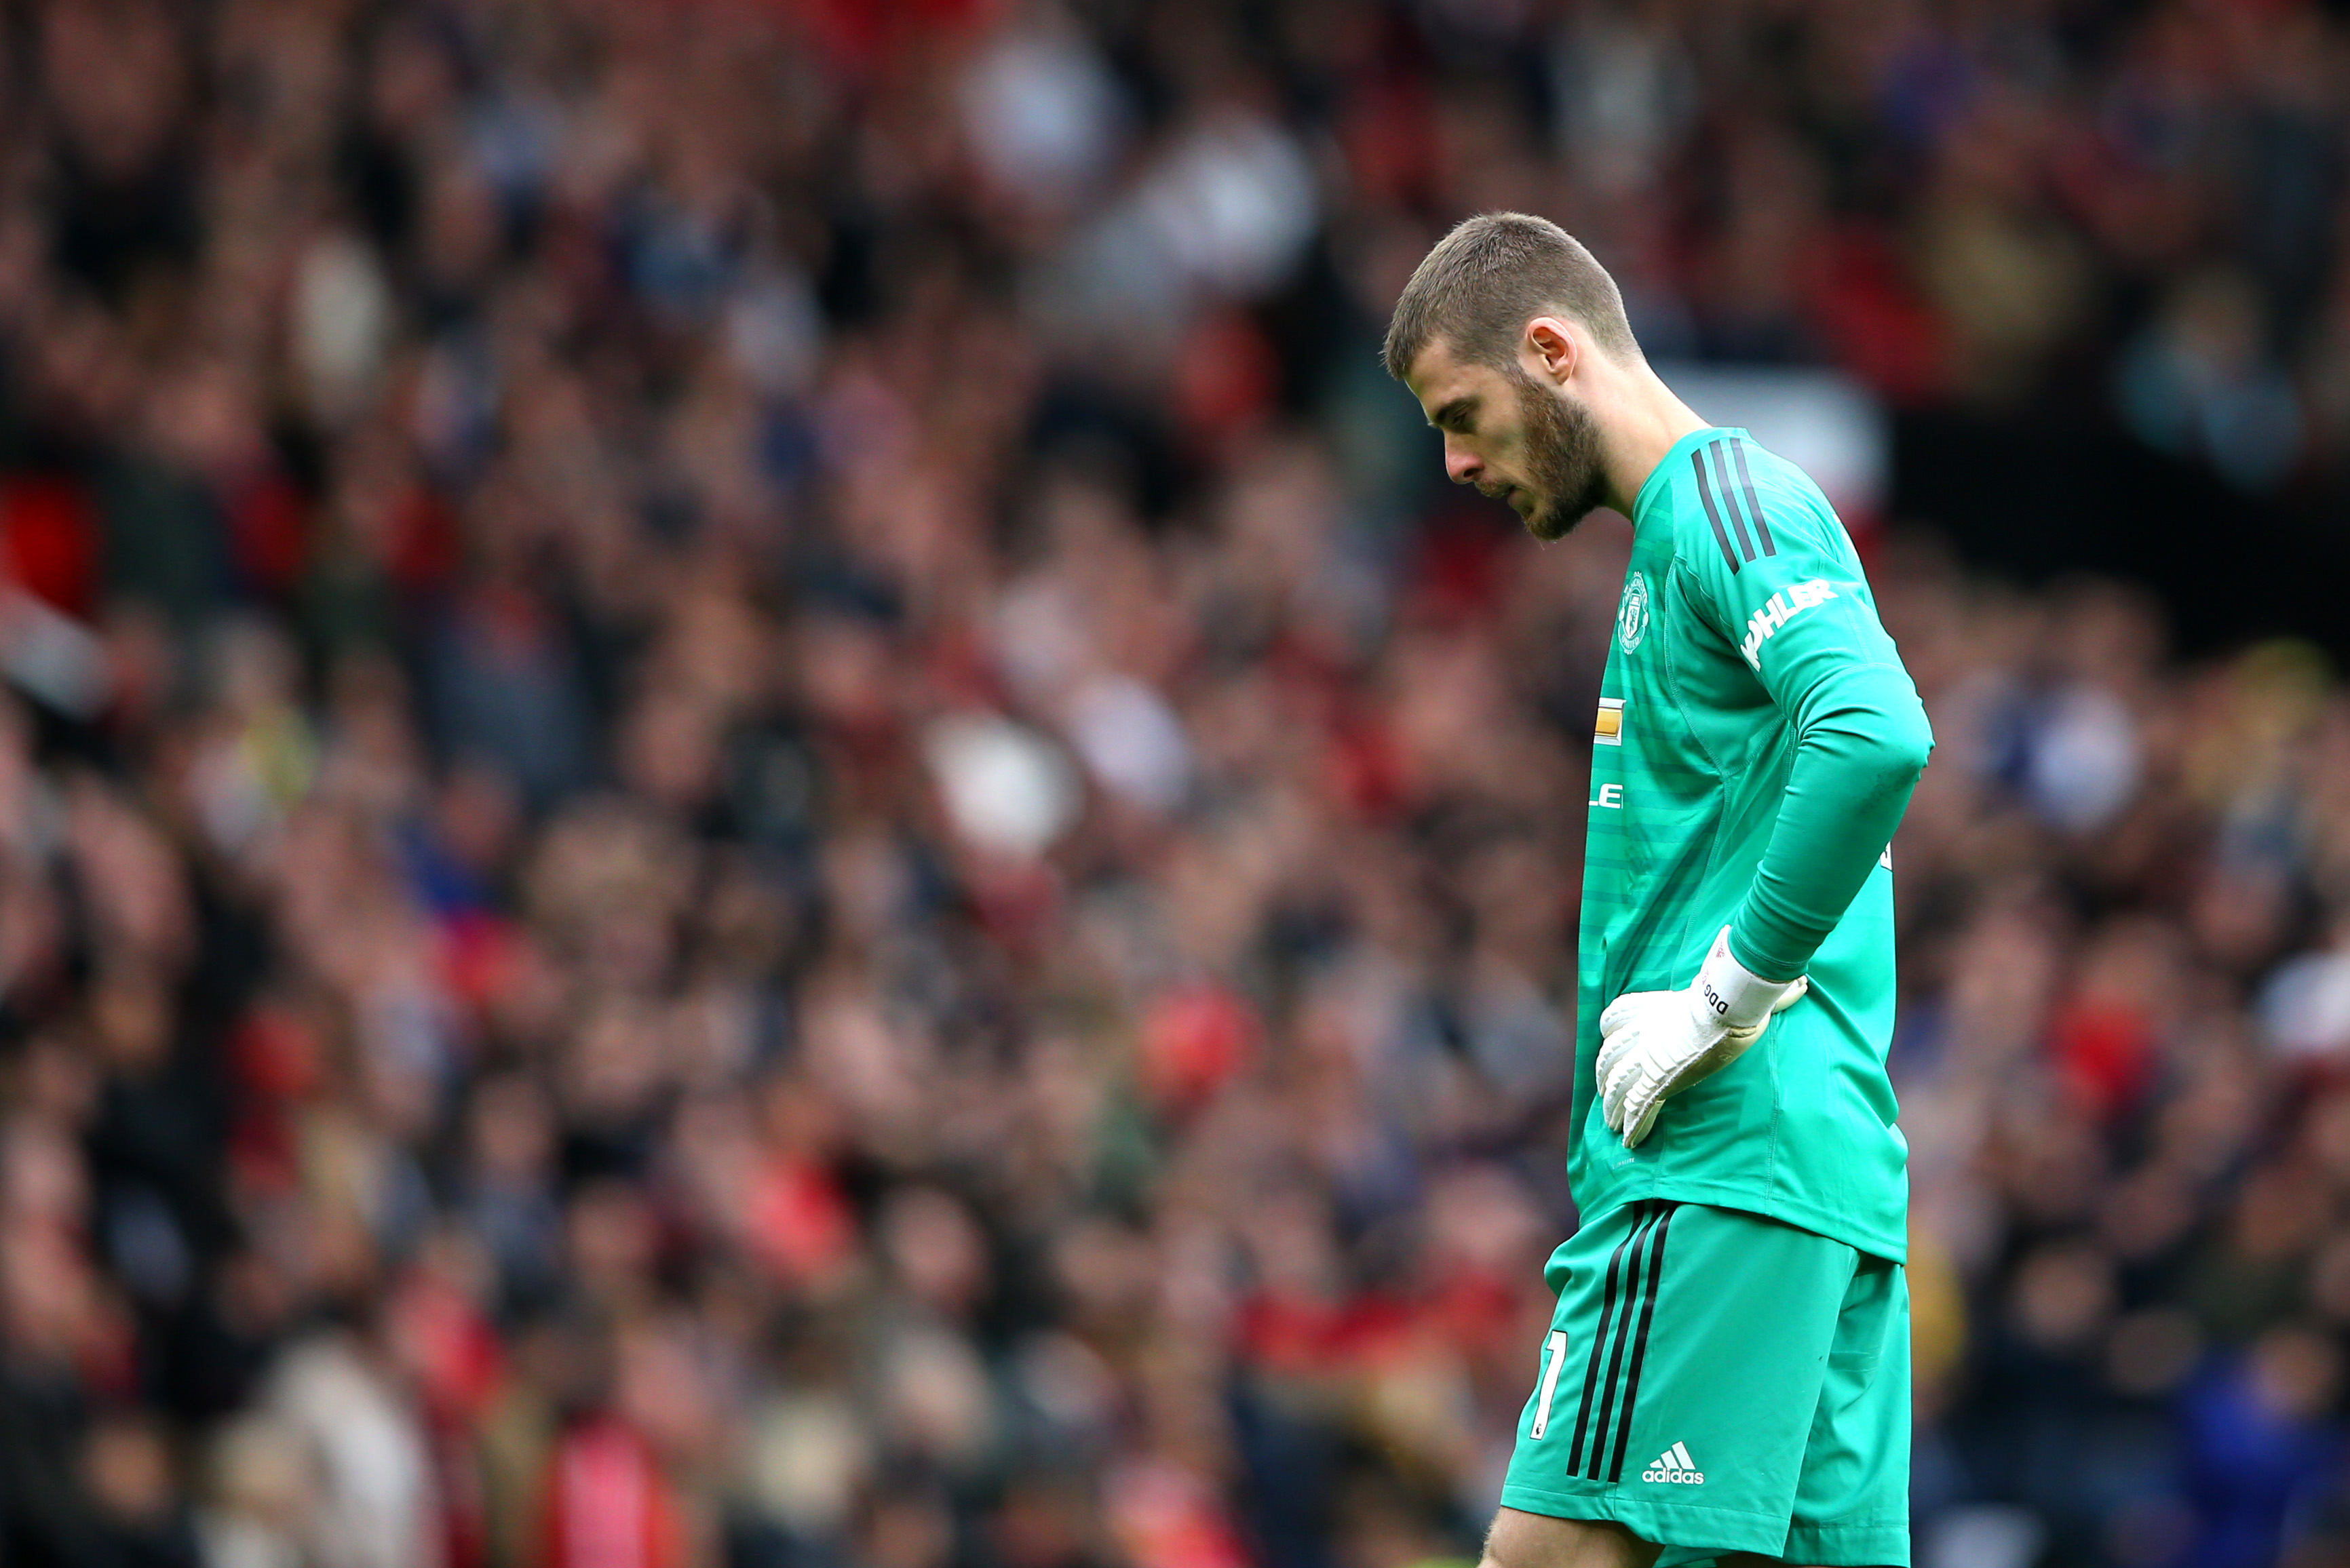 De Gea's error cost Manchester United (Photo by Alex Livesey/Getty Images)